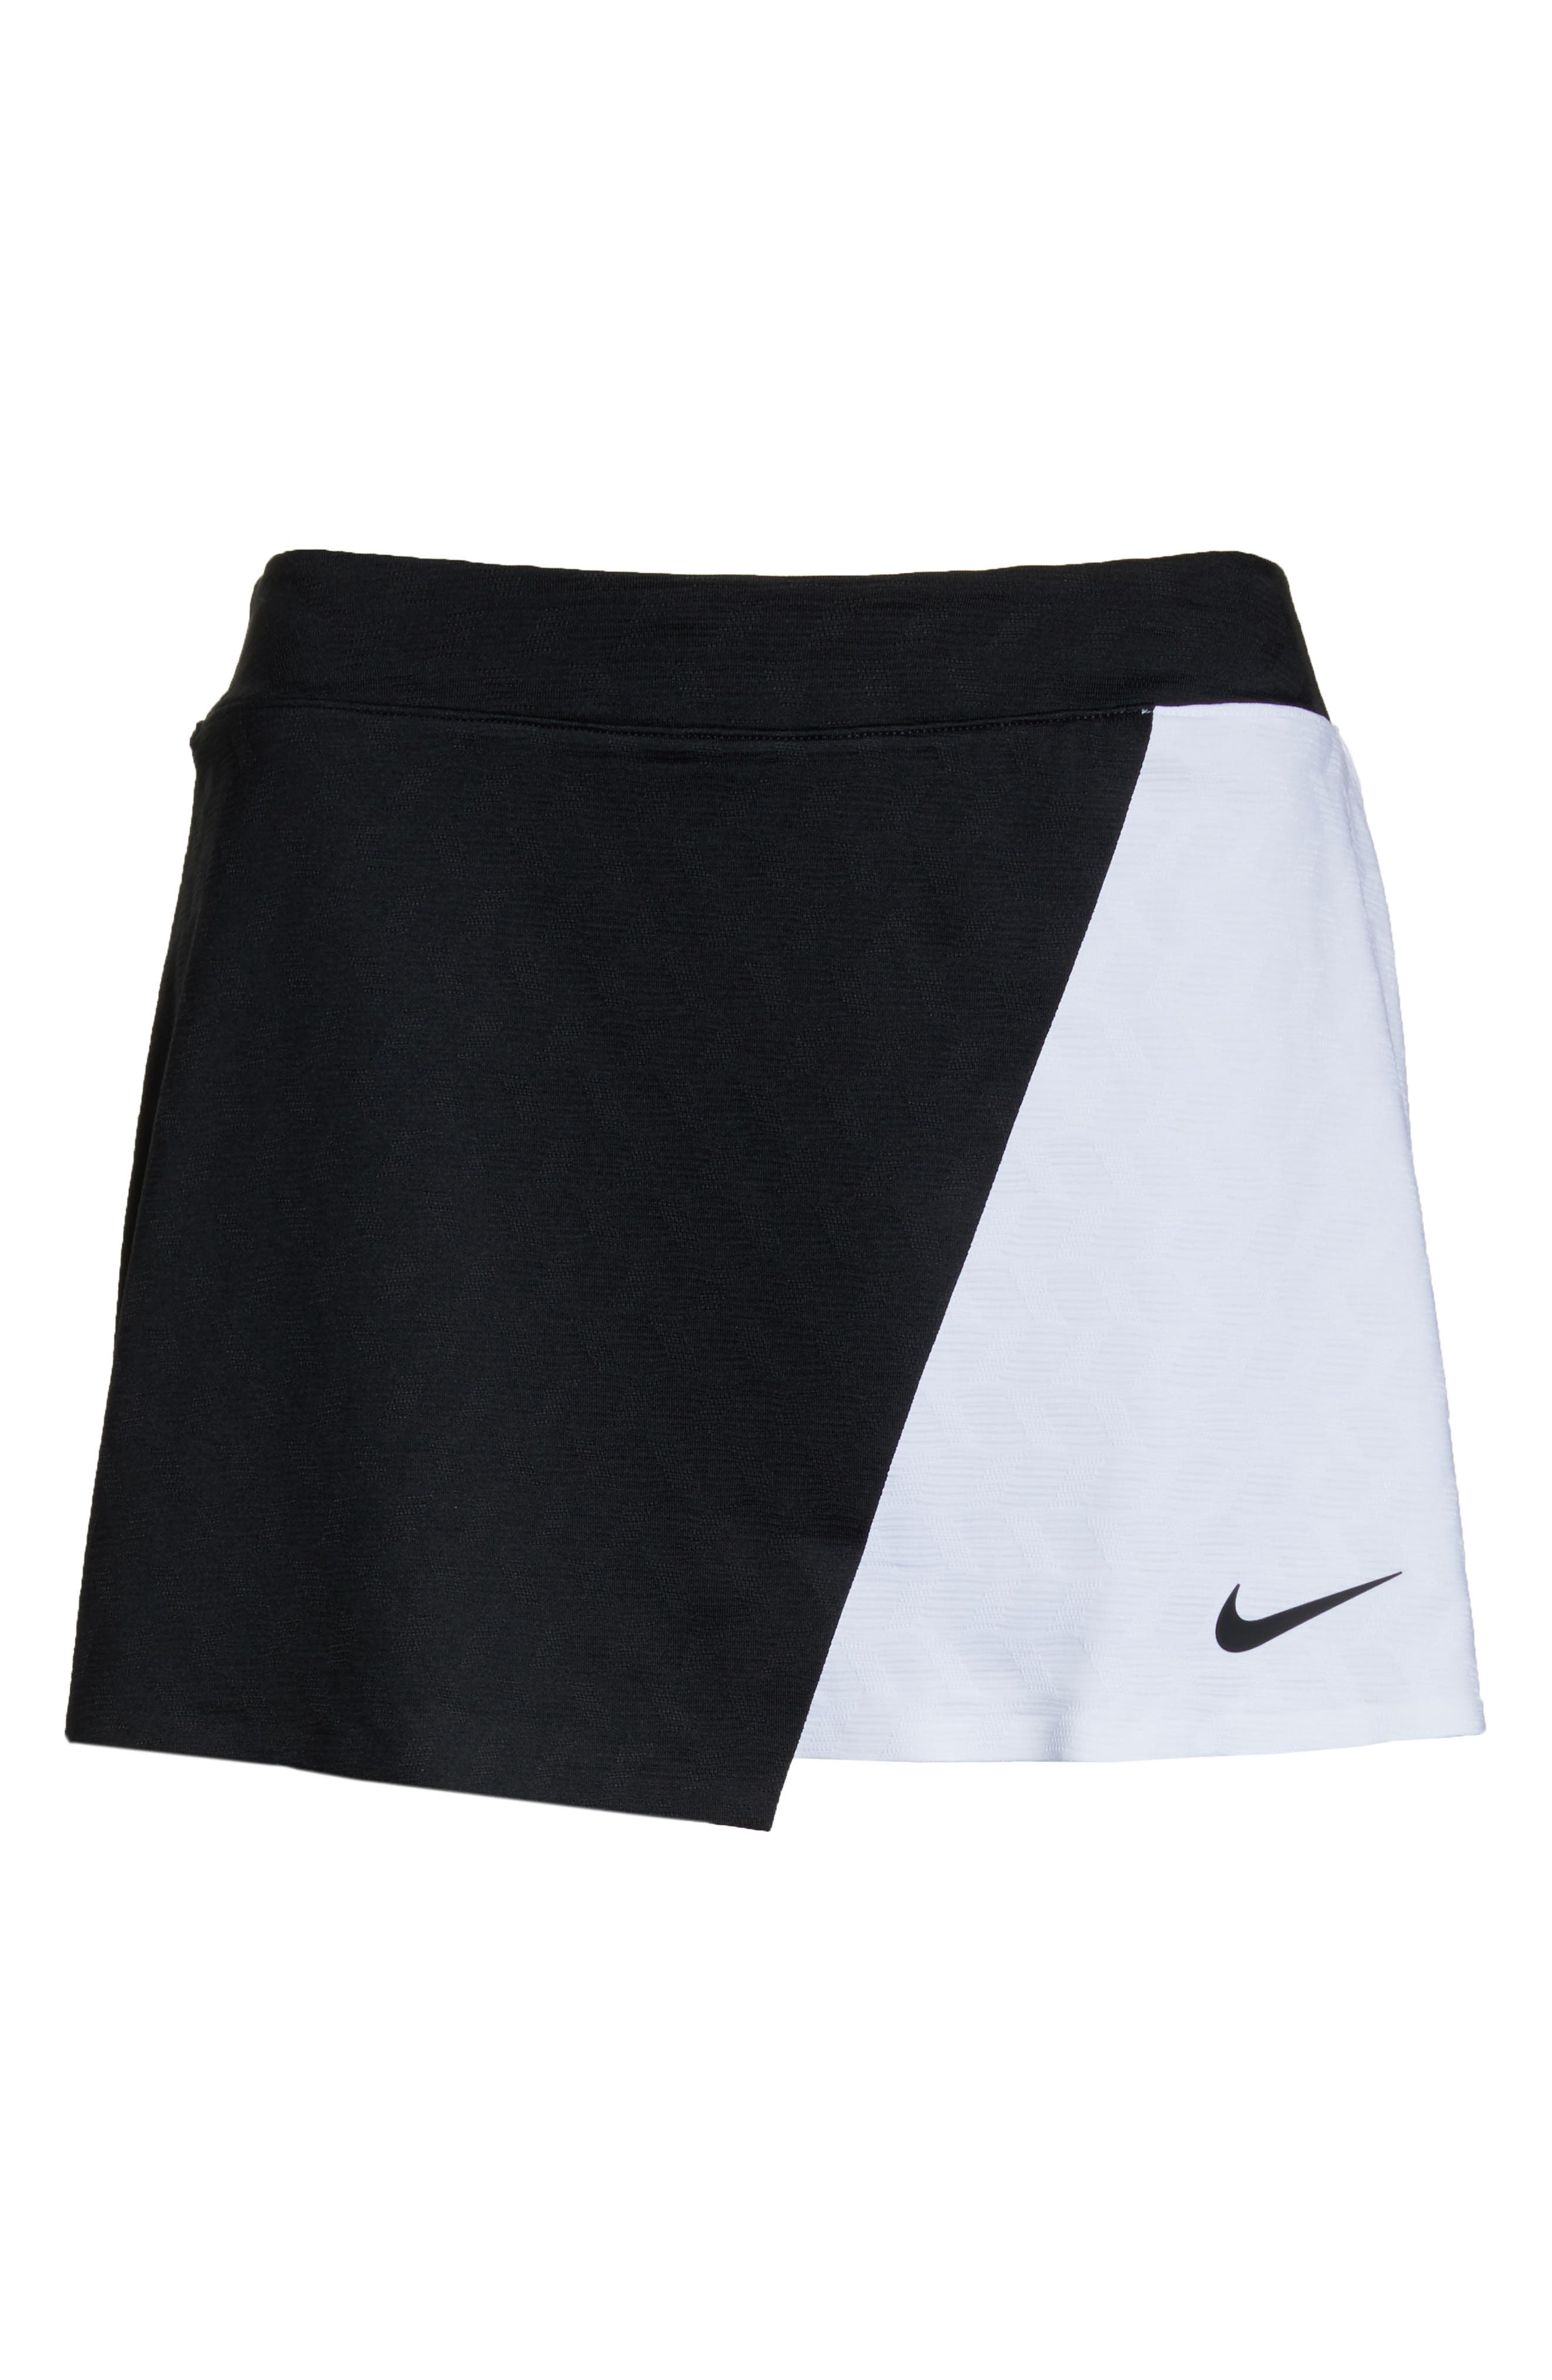 Court Maria Tennis Skirt,                             Alternate thumbnail 7, color,                             010